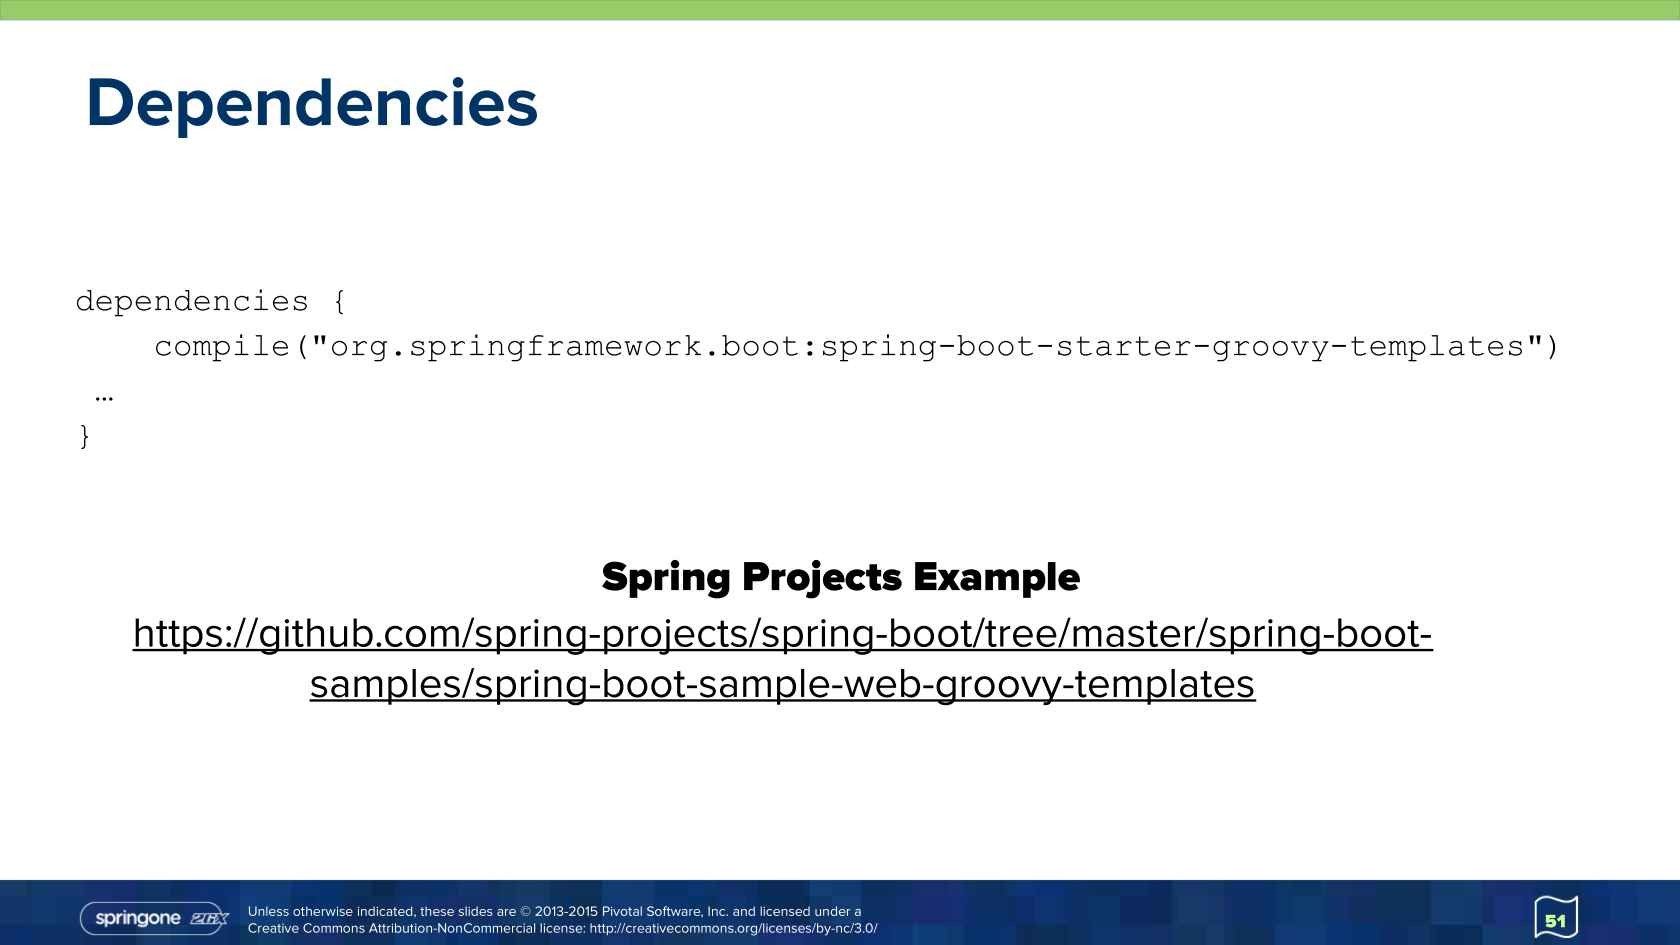 Spring Boot and Groovy